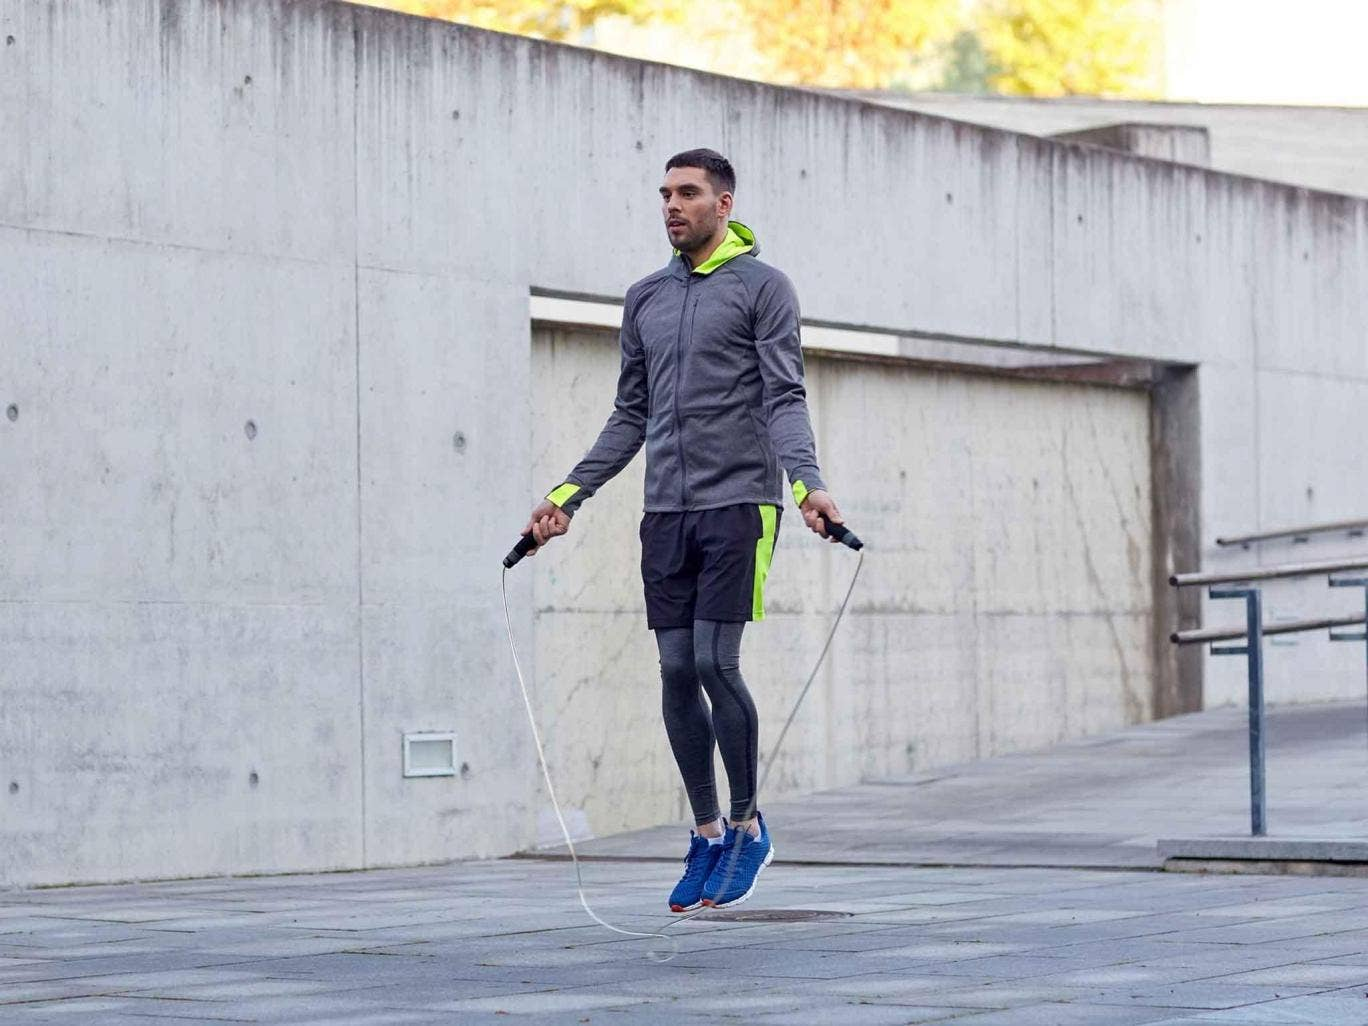 10 Best Fitness Trackers The Independent 2 Way Switch Circuit Uk 8 Skipping Ropes